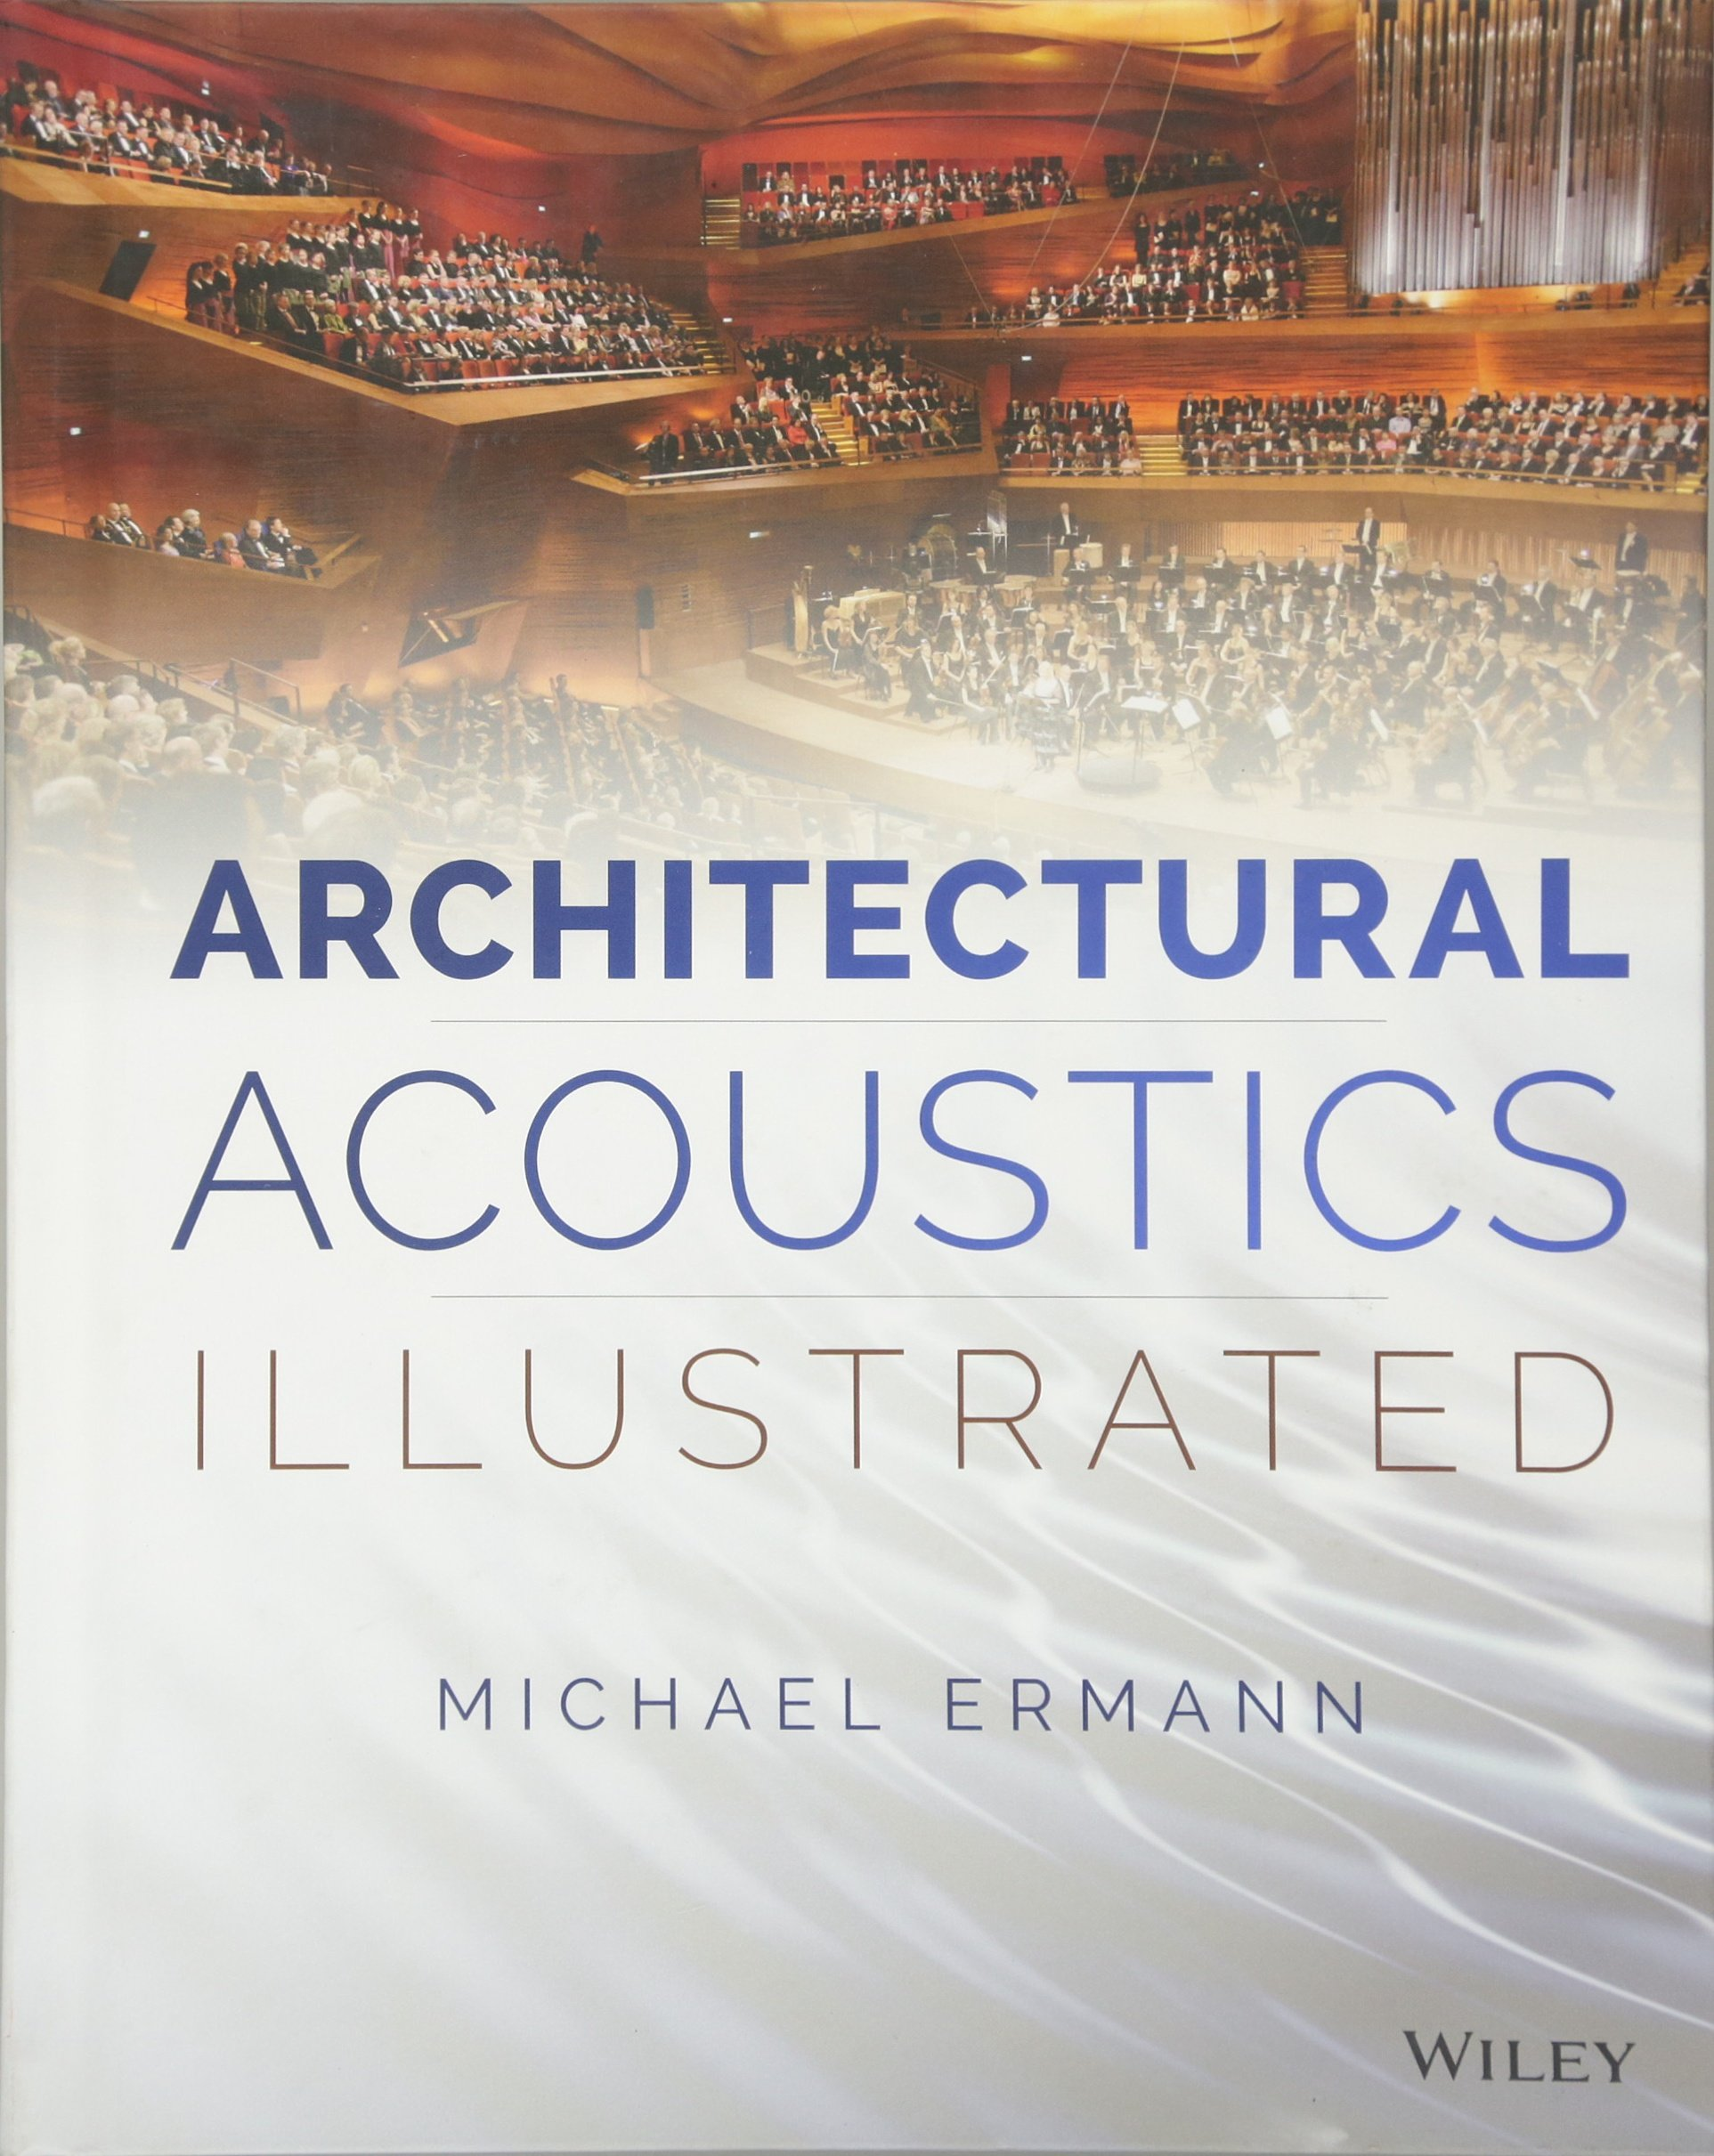 Architectural Acoustics Illustrated by imusti